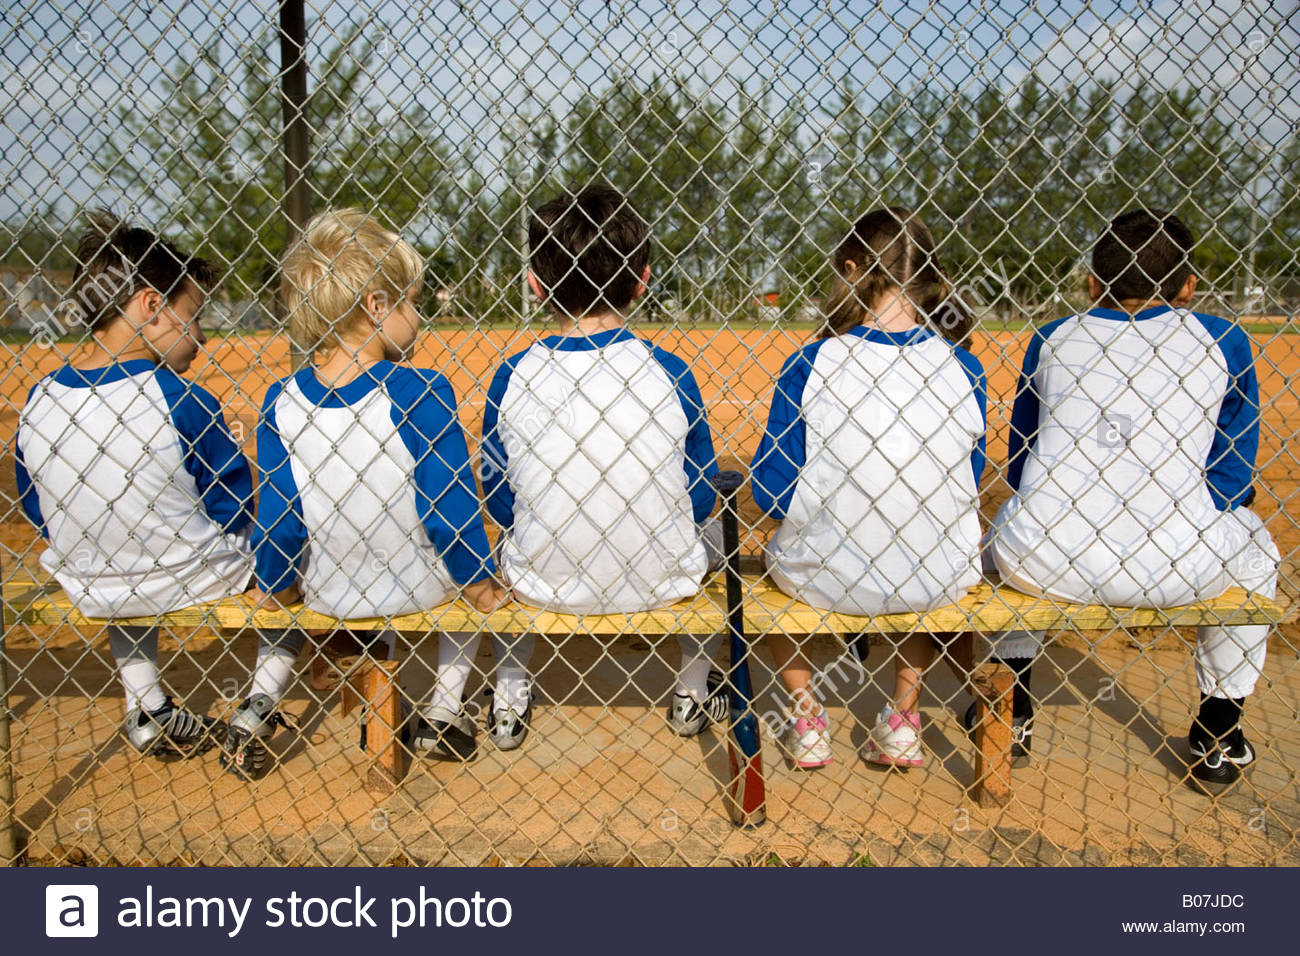 Rear view of a little league baseball team sitting on bench - Stock Image